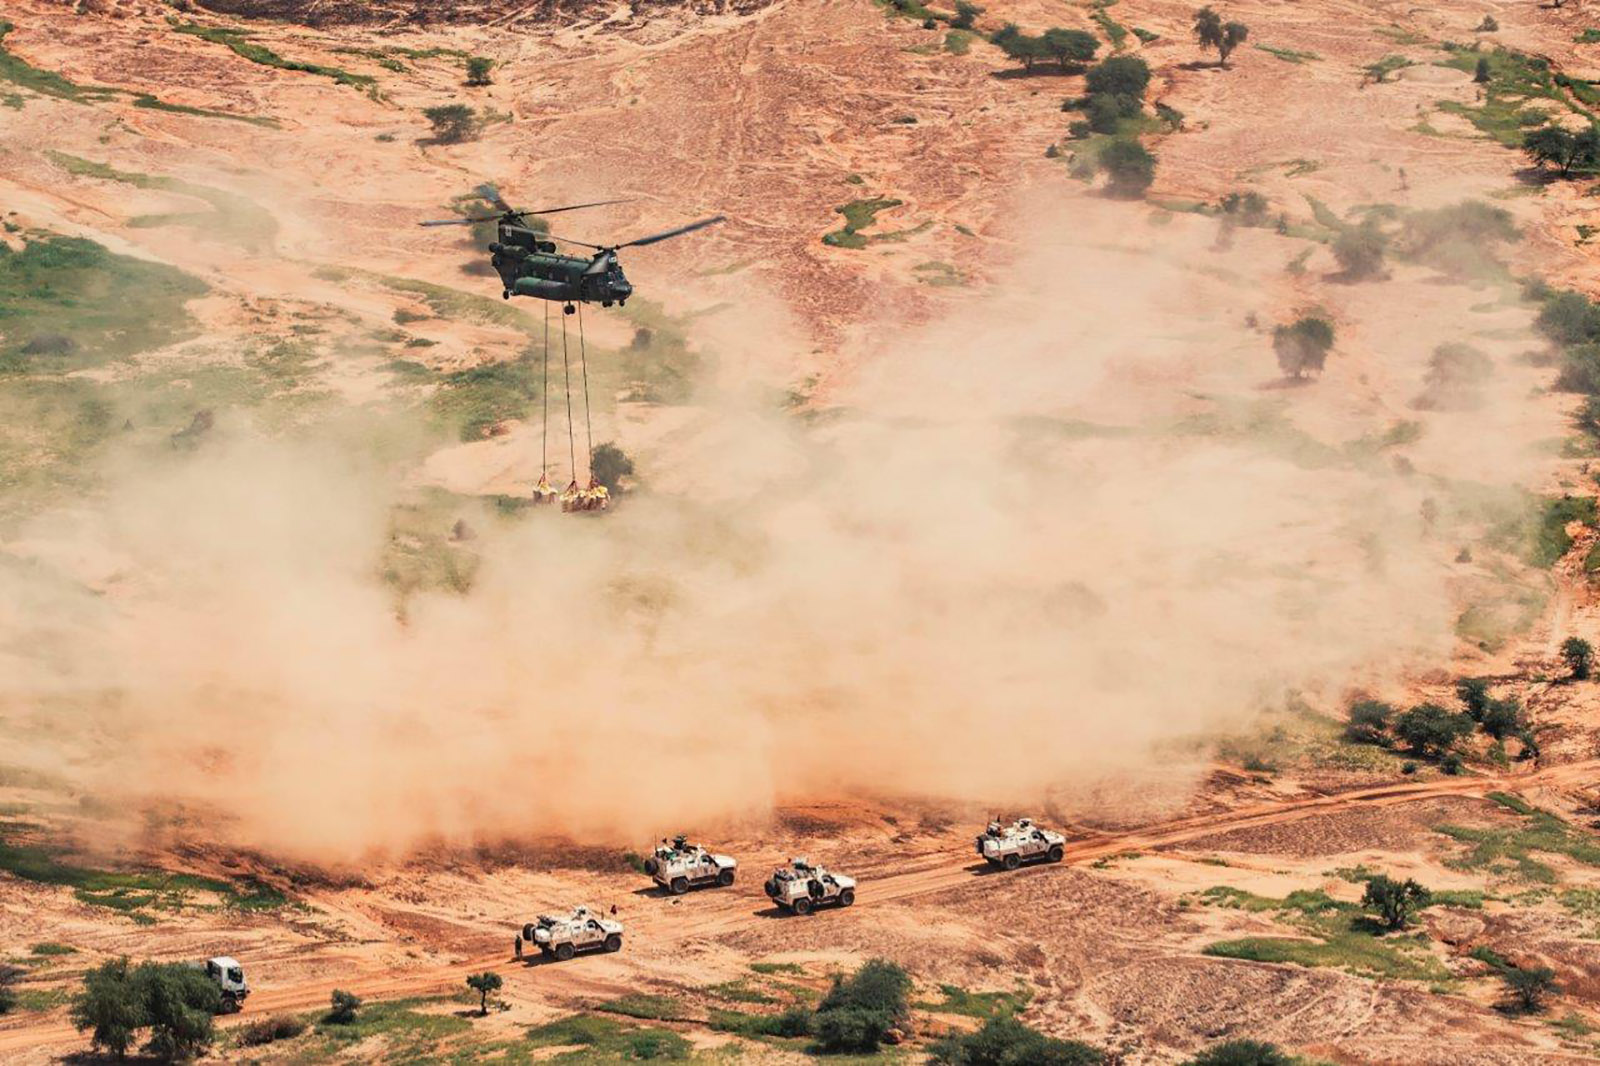 A CH-147F Chinook helicopter delivers material to a United Nations convoy near Gao during Operation PRESENCE-Mali on August 31, 2019.